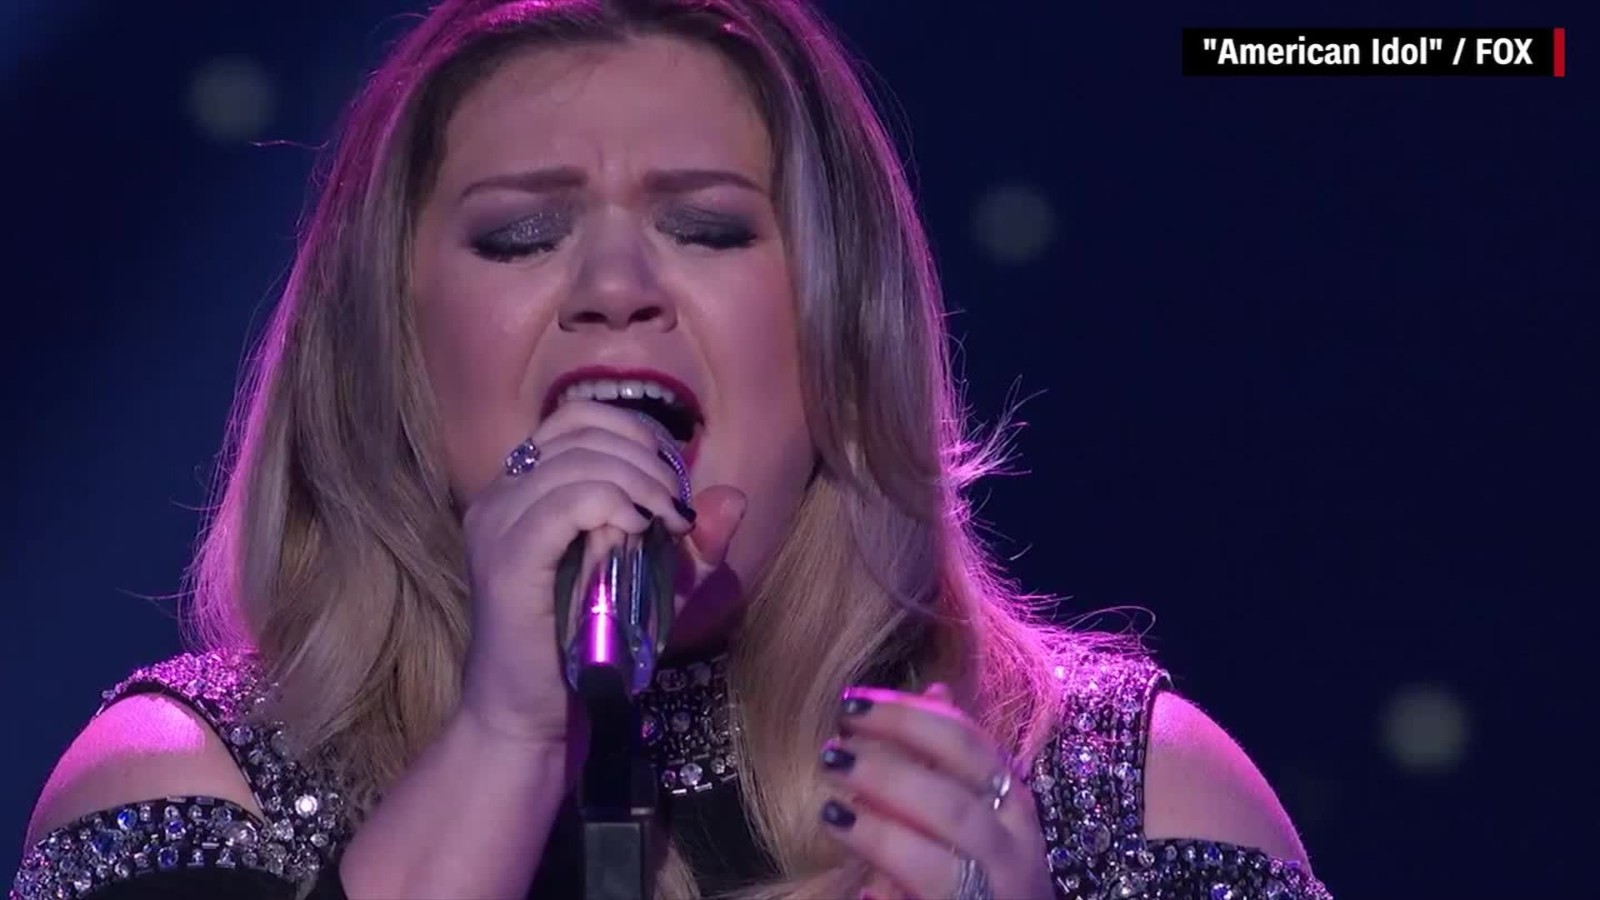 Kelly Clarksons Final American Idol Performance Will Break Your Heart Into a Million Tiny Pieces pics